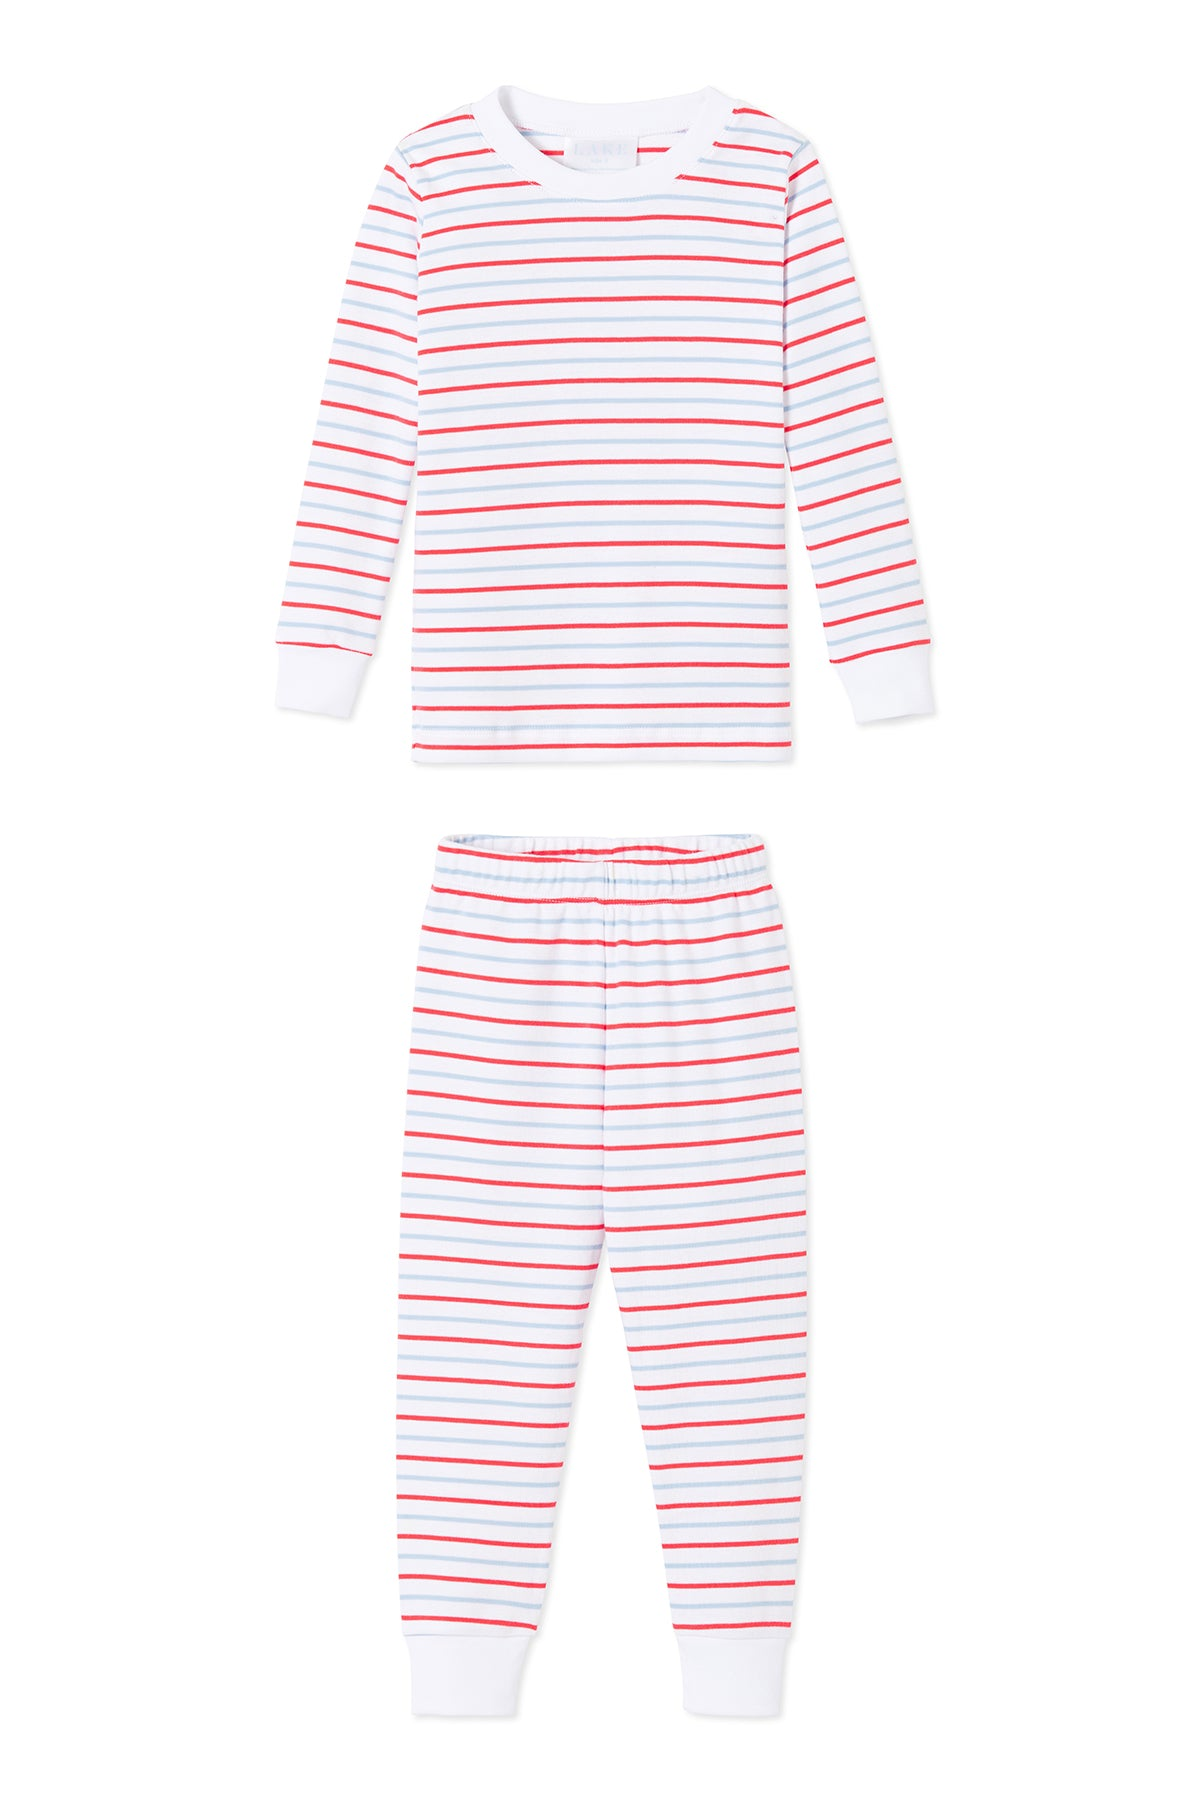 Kids Long-Long Set in Americana Stripe